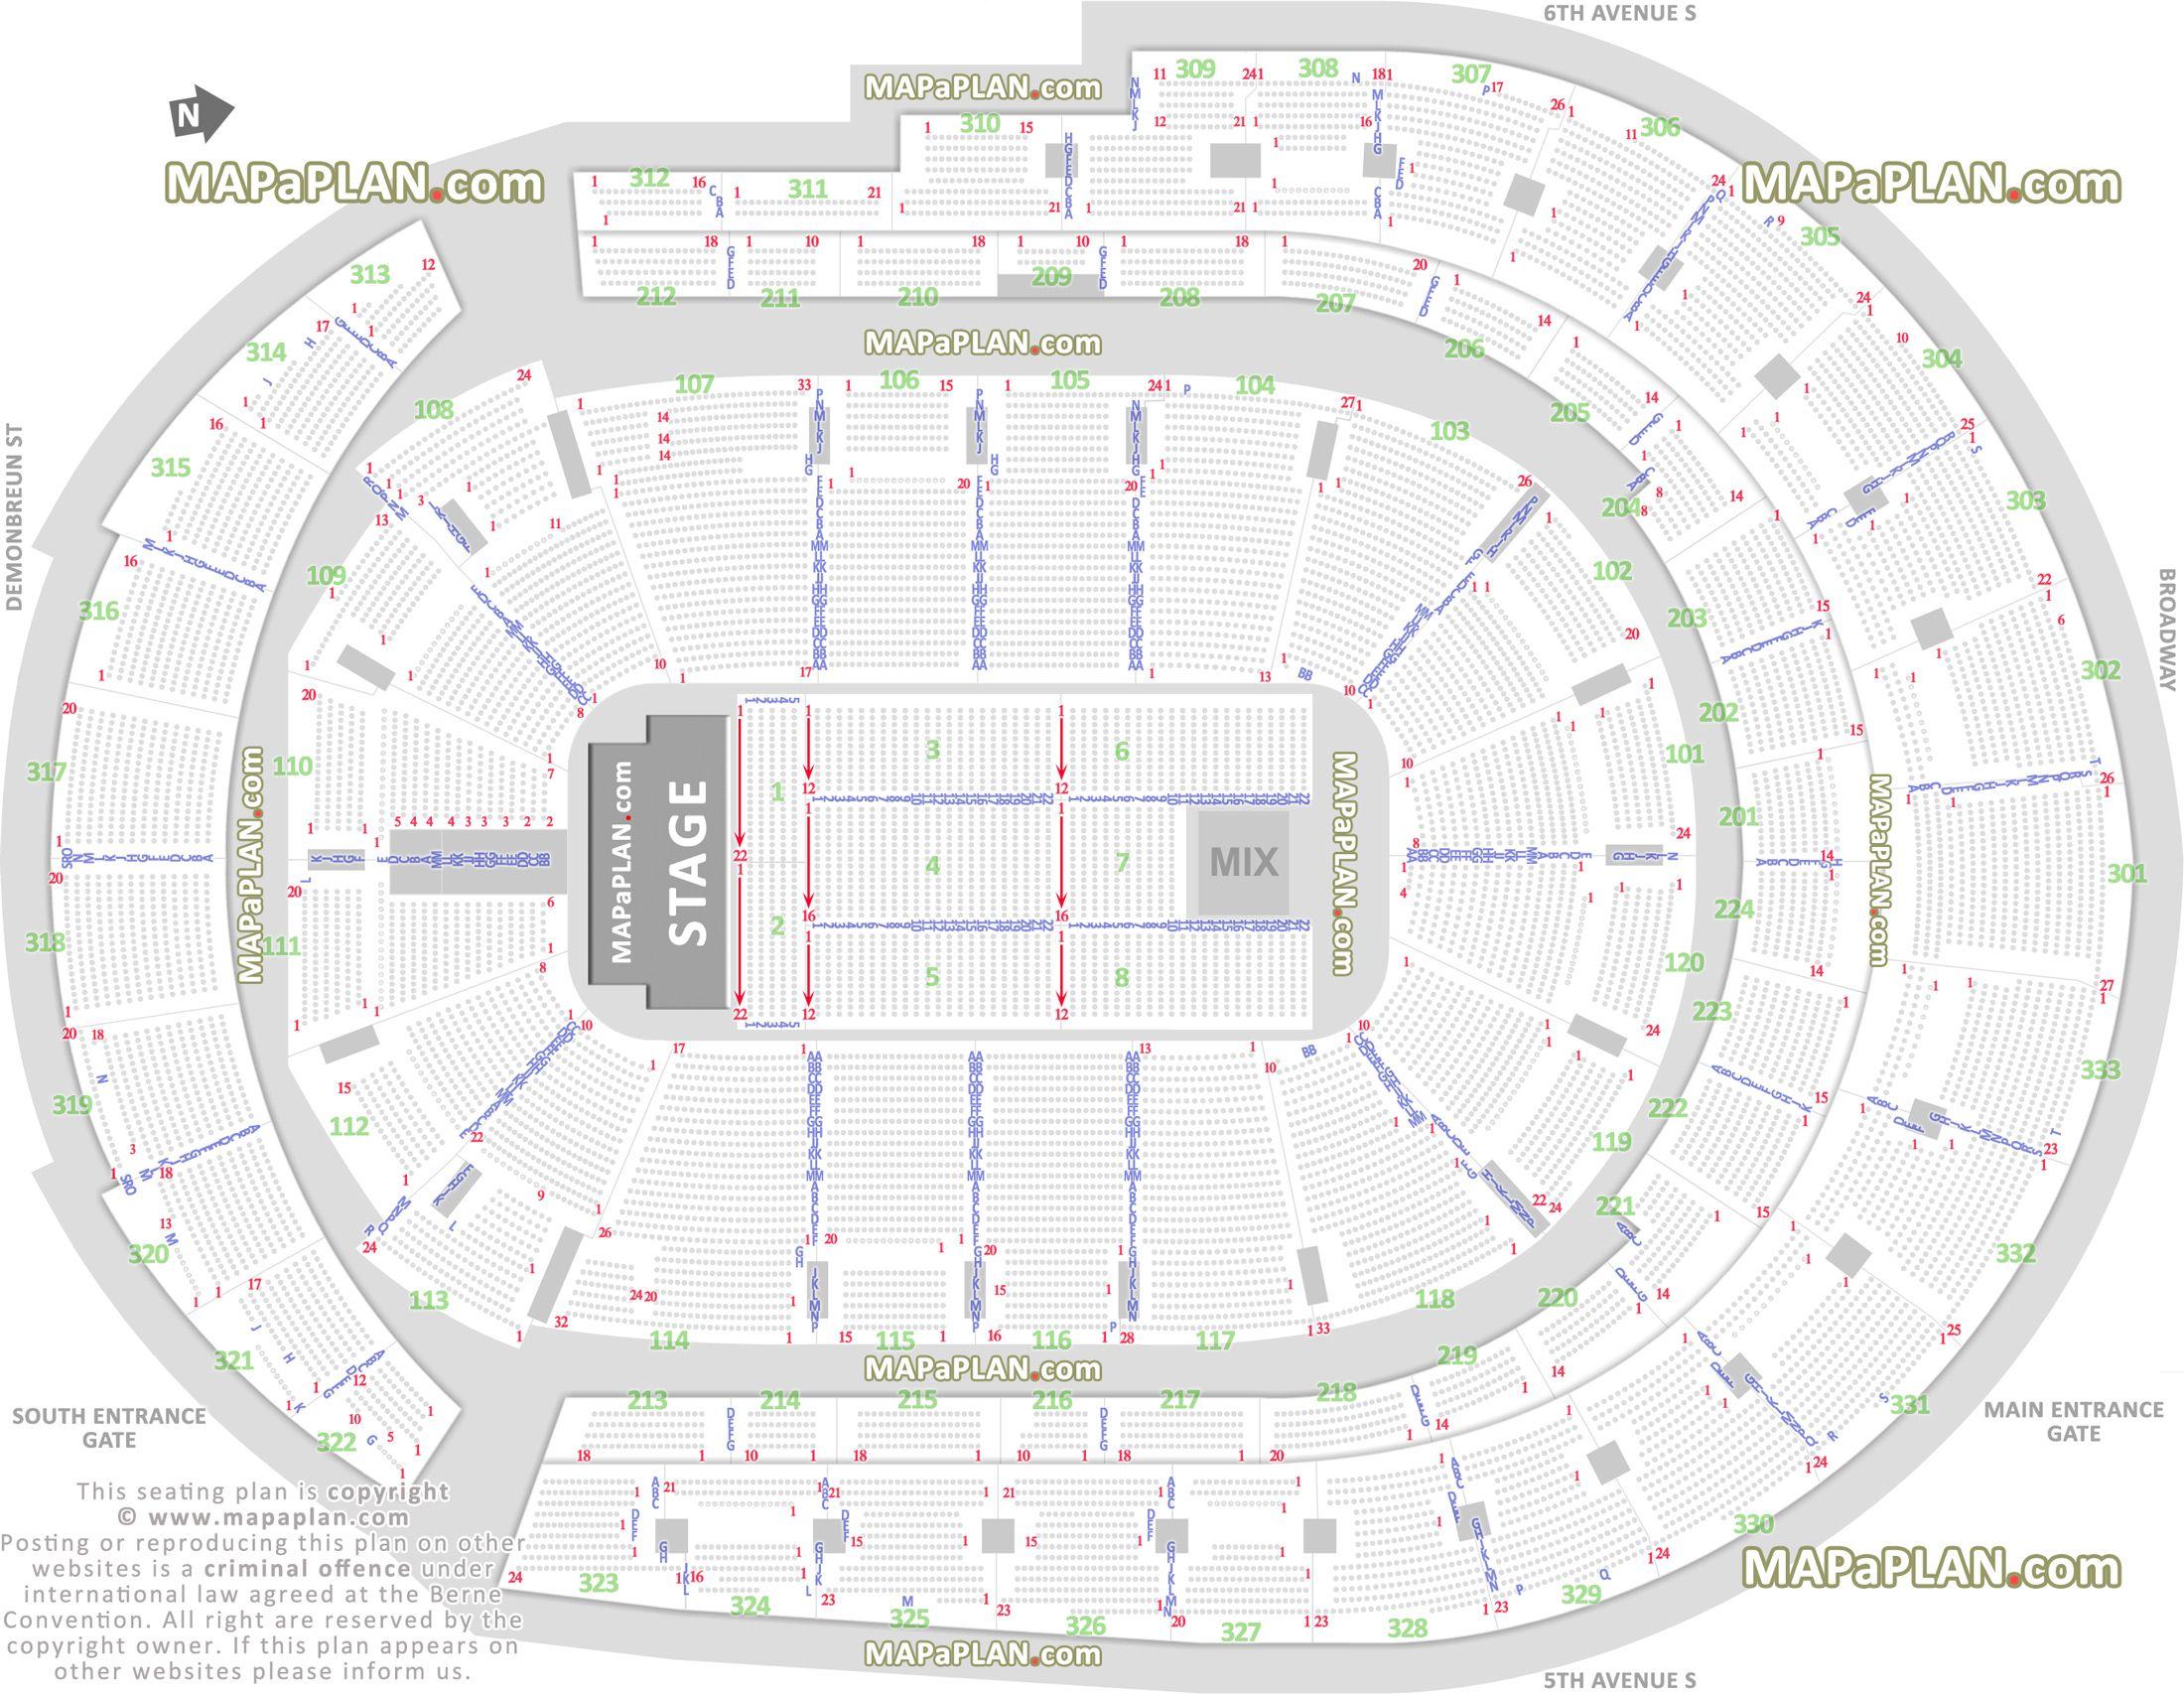 Detailed Seat Row Numbers End Stage Concert Sections Floor Plan Map Arena Lower Seating Charts The Incredibles Bridgestone